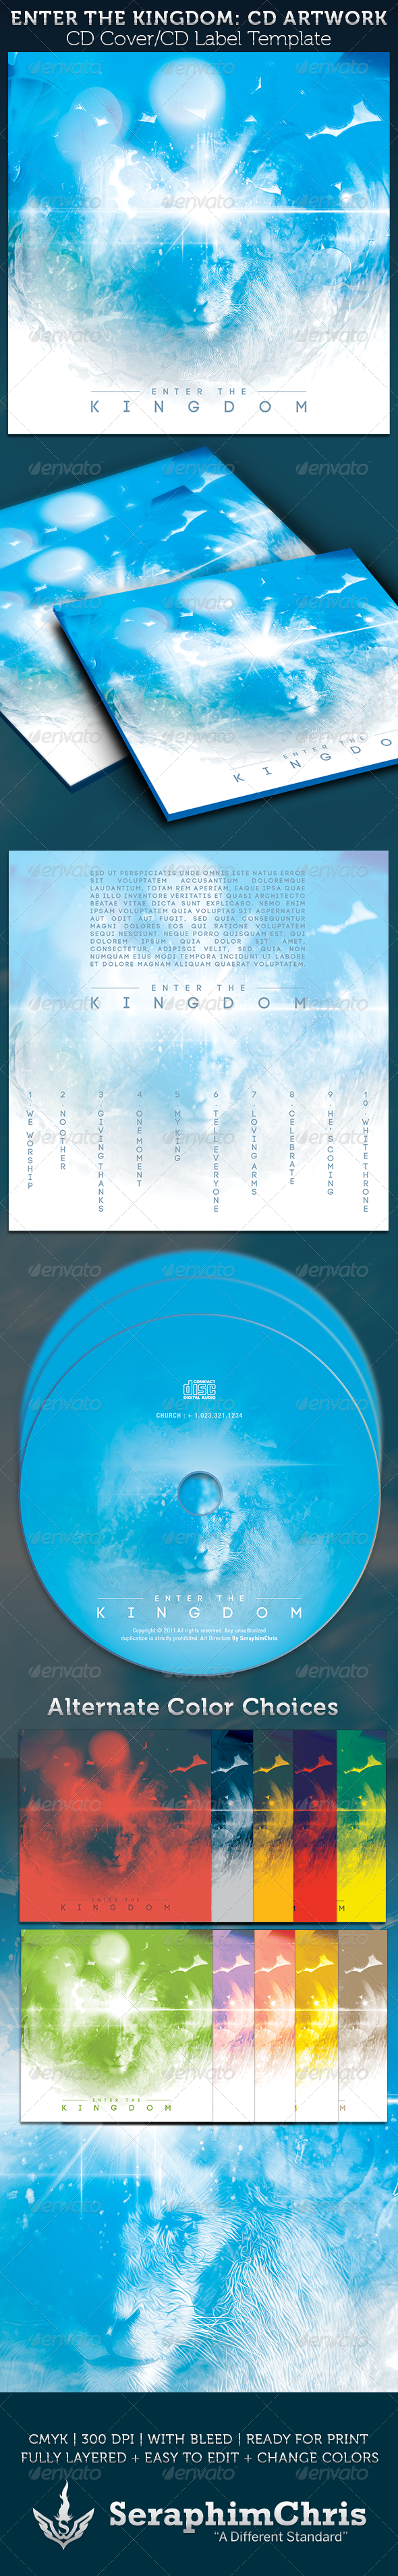 GraphicRiver Enter the Kingdom CD Cover Artwork Template 3693275